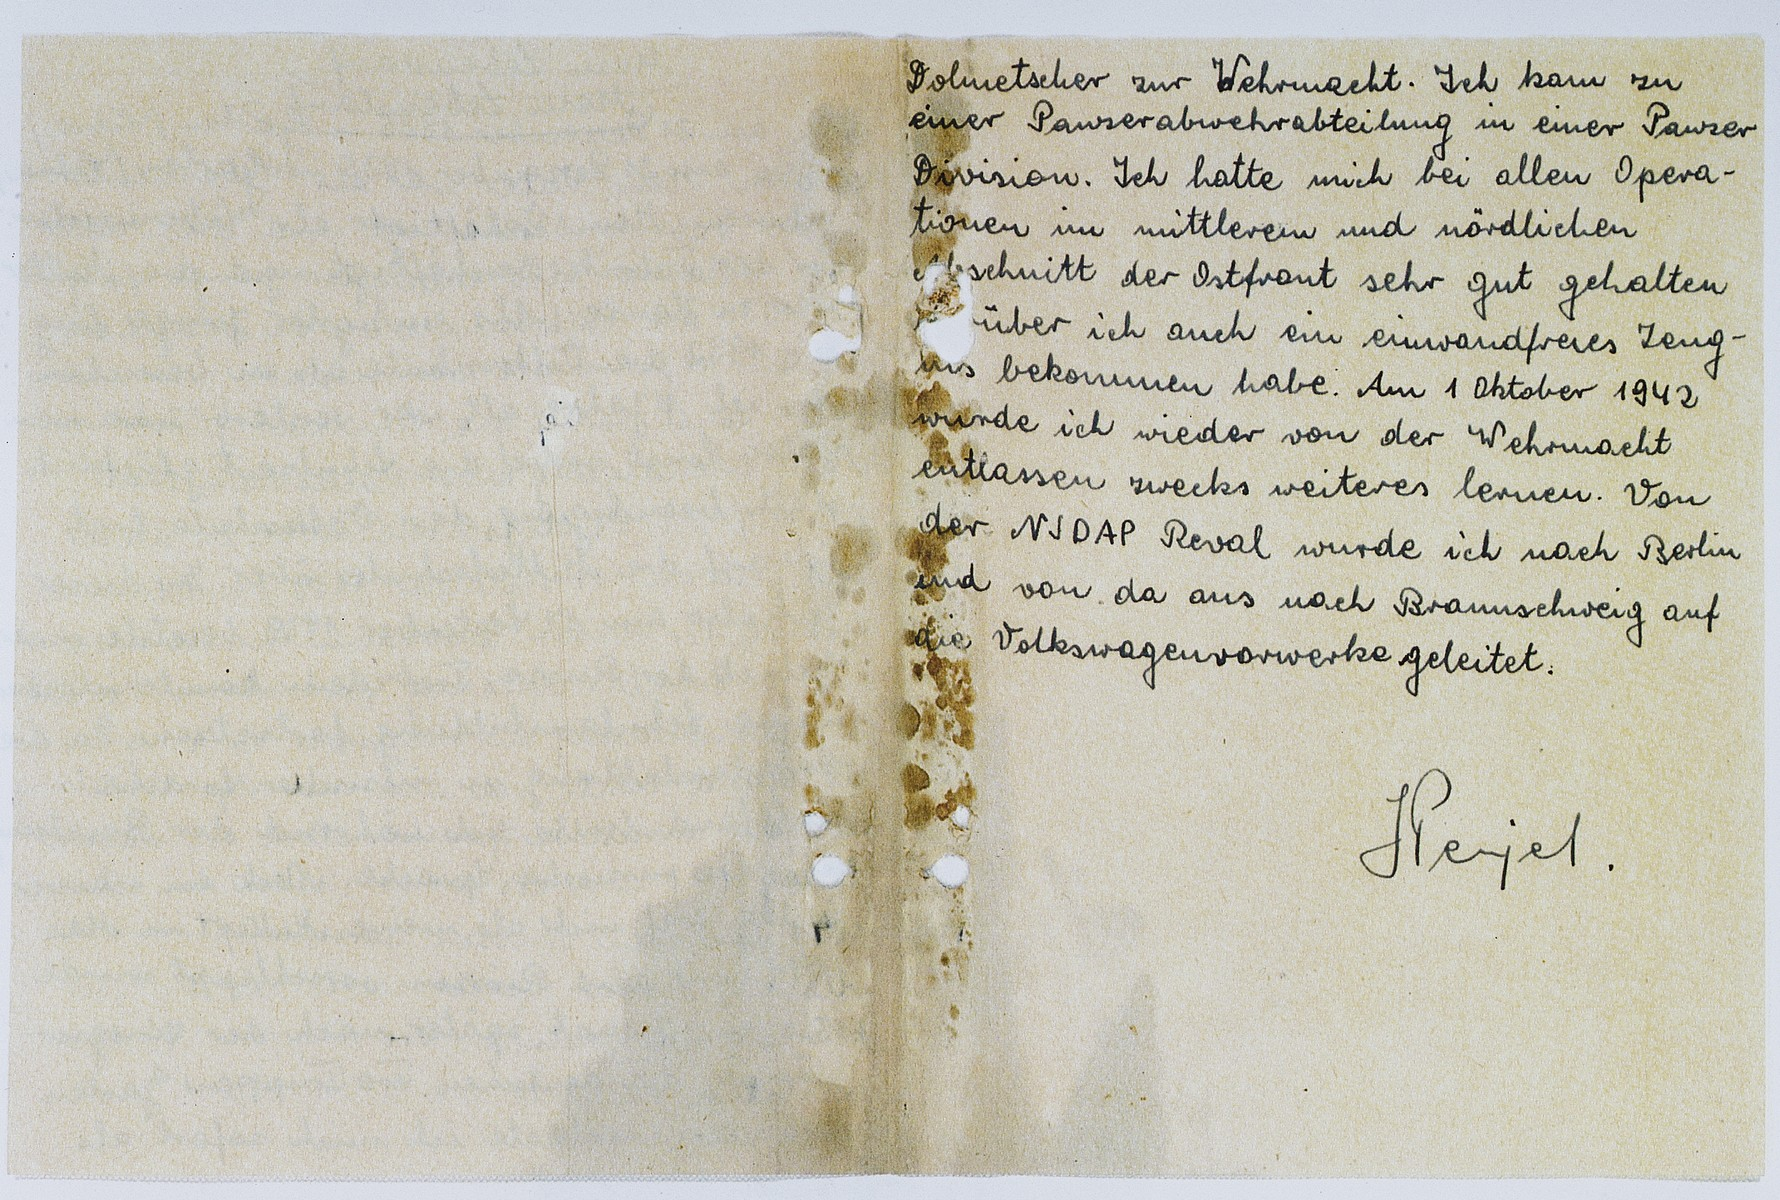 """Page 2 of a falsified personal history submitted by Josef Perjell (Solly Perel) while he was in a Hitler Youth training facility in Braunschweig.  He writes,""""I was born on December 21, 1925 in Garten / Wilma.  My father was employed as a weaver/tailor in the factory, and my mother stayed at home.  In 1939, while I was still a child, I began attending elementary school.  When I was 11 years old, my father died.  After that, the school year passed happily.  After I had completed elementary school, I went on to the middle school.  During this time, on September 17, 1939, the Russians occupied our area.  Nevertheless I was able to continue my education.  The courses were taught in Russian, so during the time of occupation I learned the Russian language.  After a difficult battle, I learned that my mother had been taken by the Russians in May of 1941.  A month later, after war was declared and German troops occupied Garten I registered right away as [indecipherable] in the German army.  I was assigned to a defense battalion in the tank division.  I performed very well in all operations in the middle and northern areas of the Eastern front; for this I received a certificate.  On October 1, 1942, I was released from the army until further notice.  From the NSDAP (Nazi Party) Reval I went to Berlin and then from there to Braunschweig to work in the Volkswagen factory."""""""